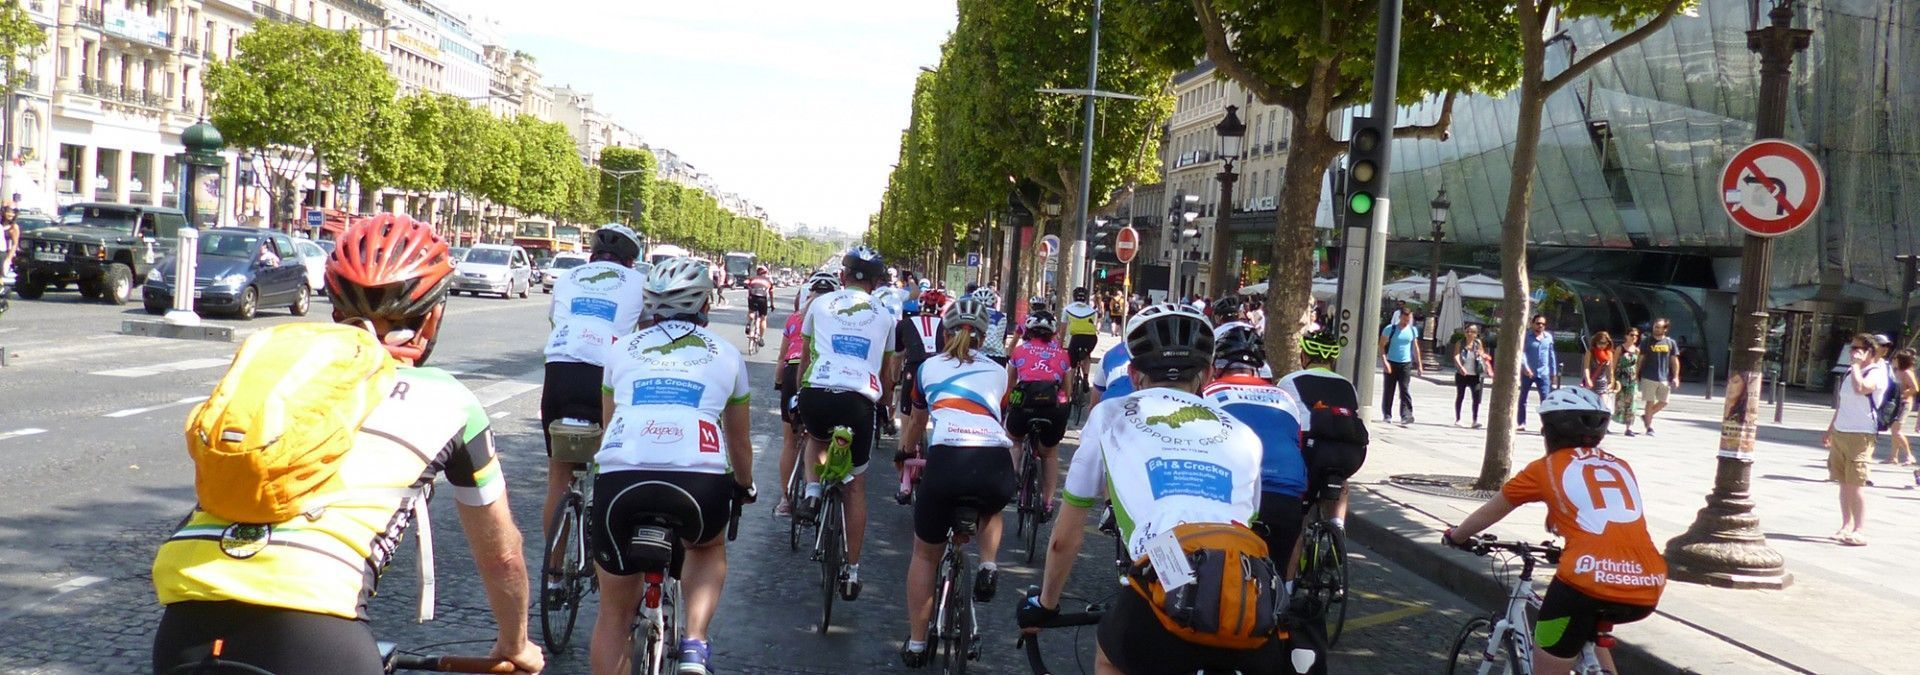 Peloton_Cycling_through_Paris.jpg